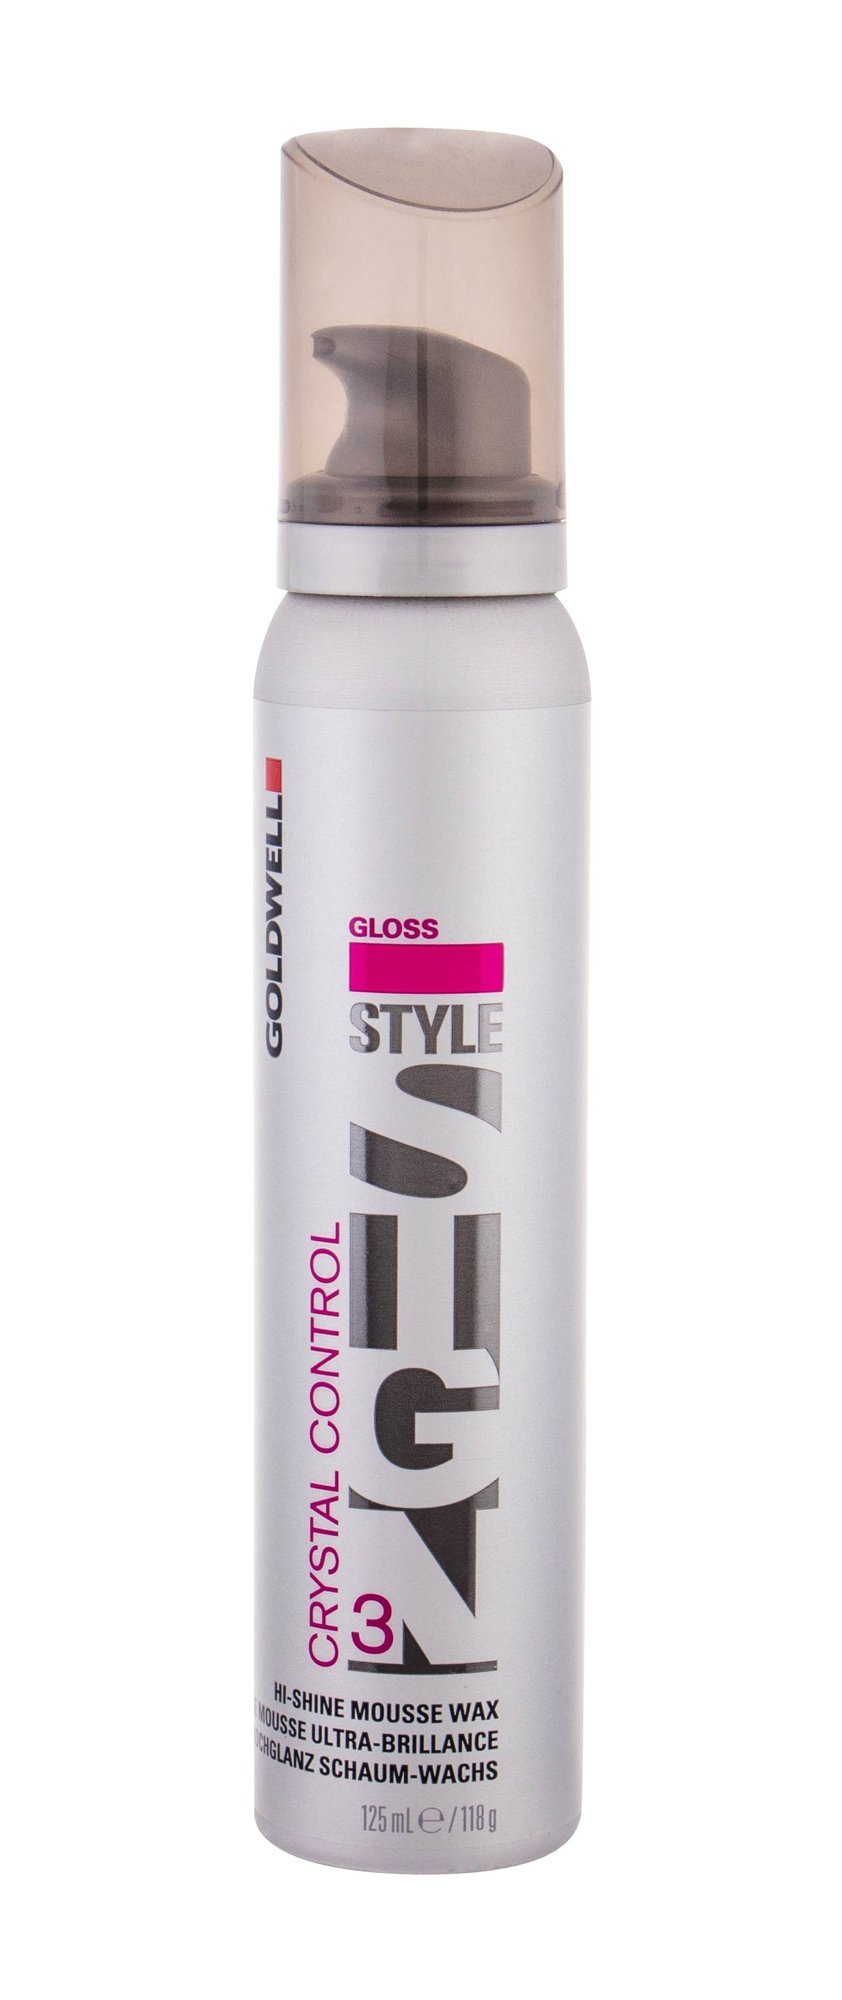 Goldwell Style Sign Gloss For Definition and Hair Styling 125ml  Diamond Gloss